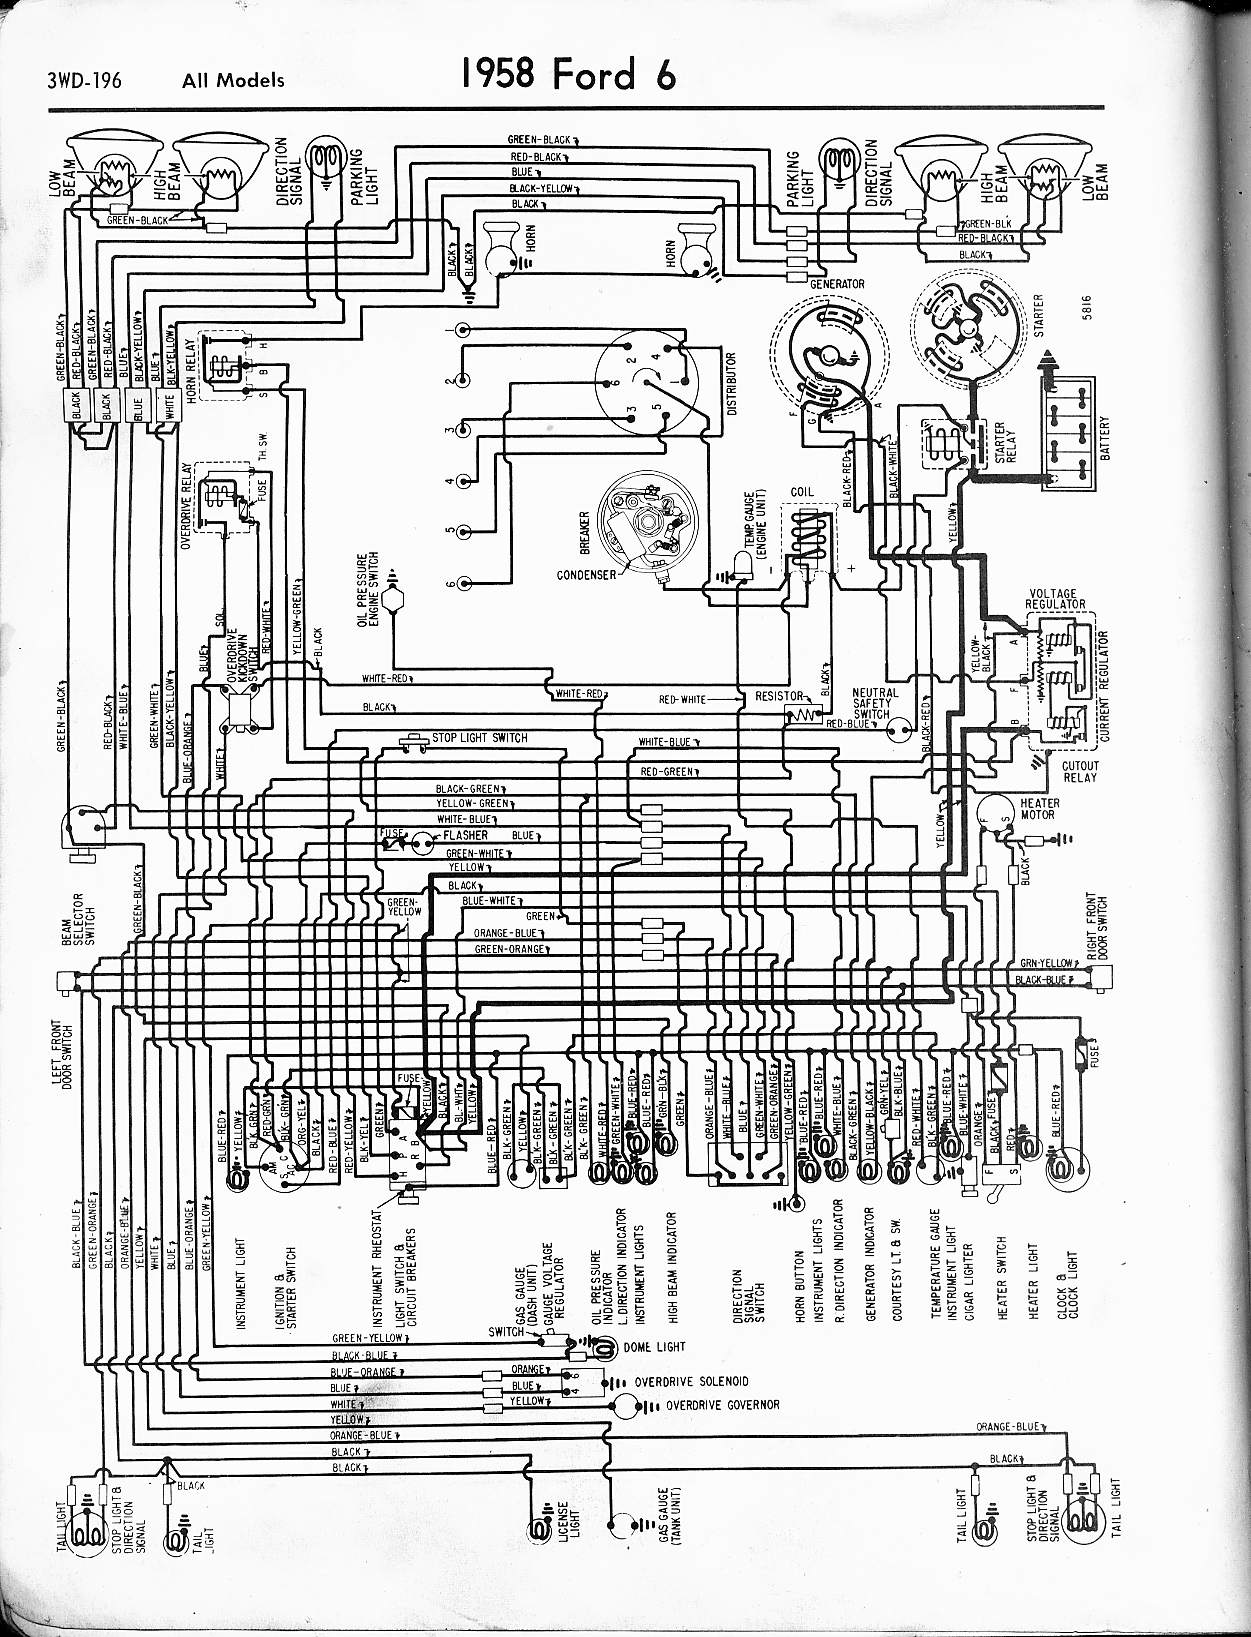 1965 ford wiring diagram schematics wiring diagrams u2022 rh seniorlivinguniversity co Ford Pinto Ignition Wiring Diagram 1974 Ford Pinto Wiring-Diagram